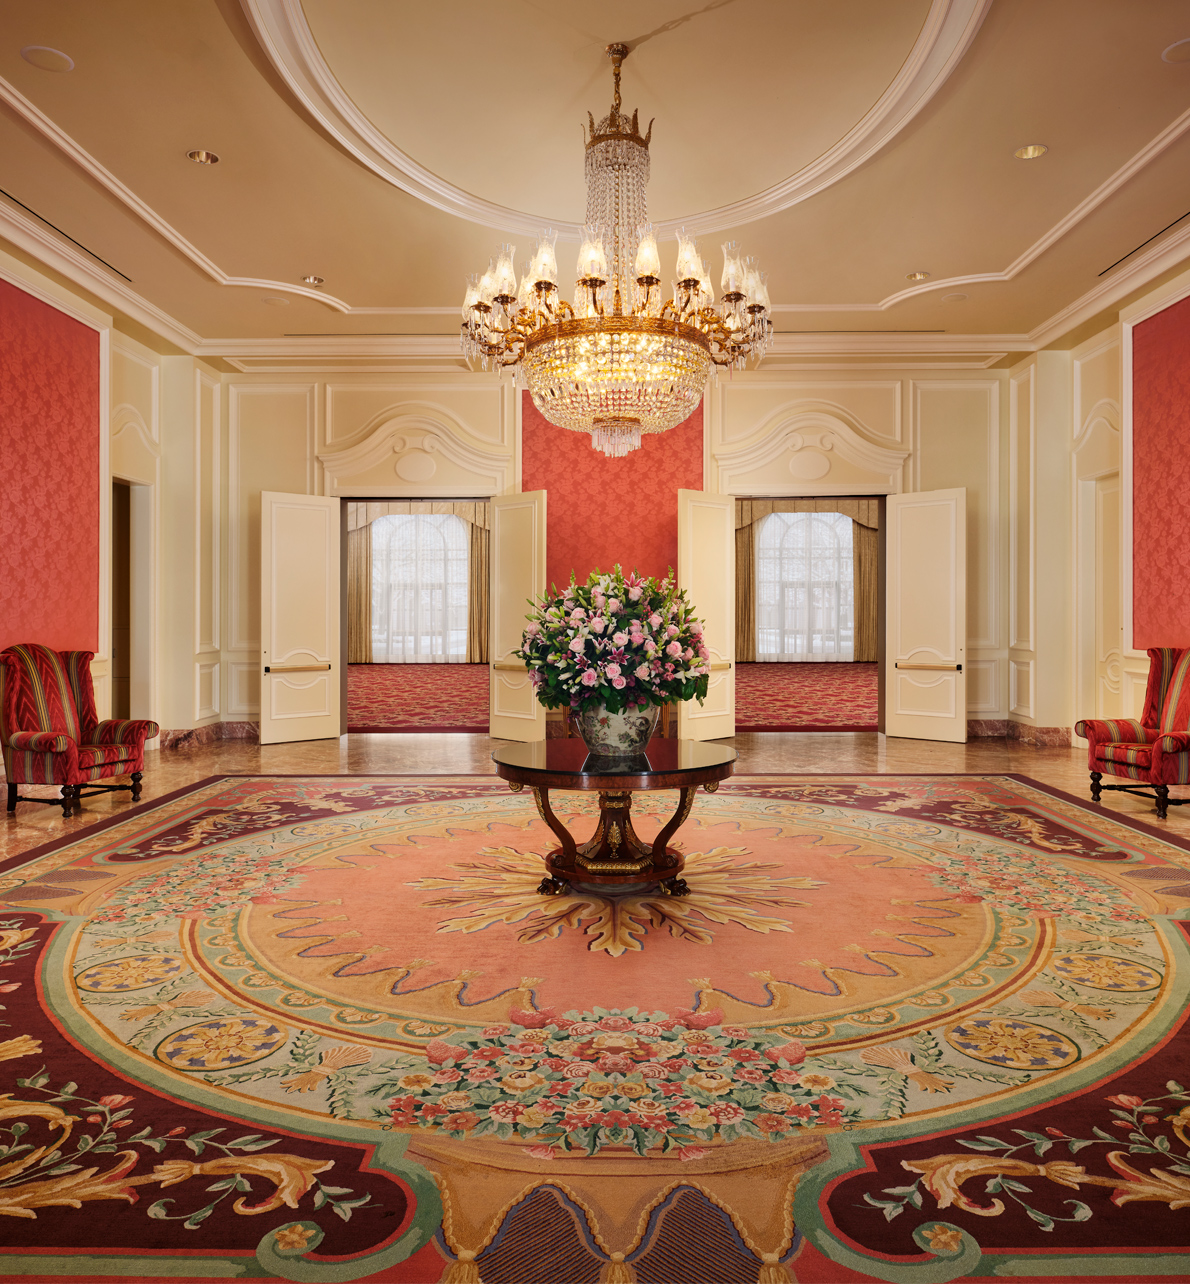 Reception area in the Grand Salon meeting space with hanging chandelier and center table with arrangement of flowers